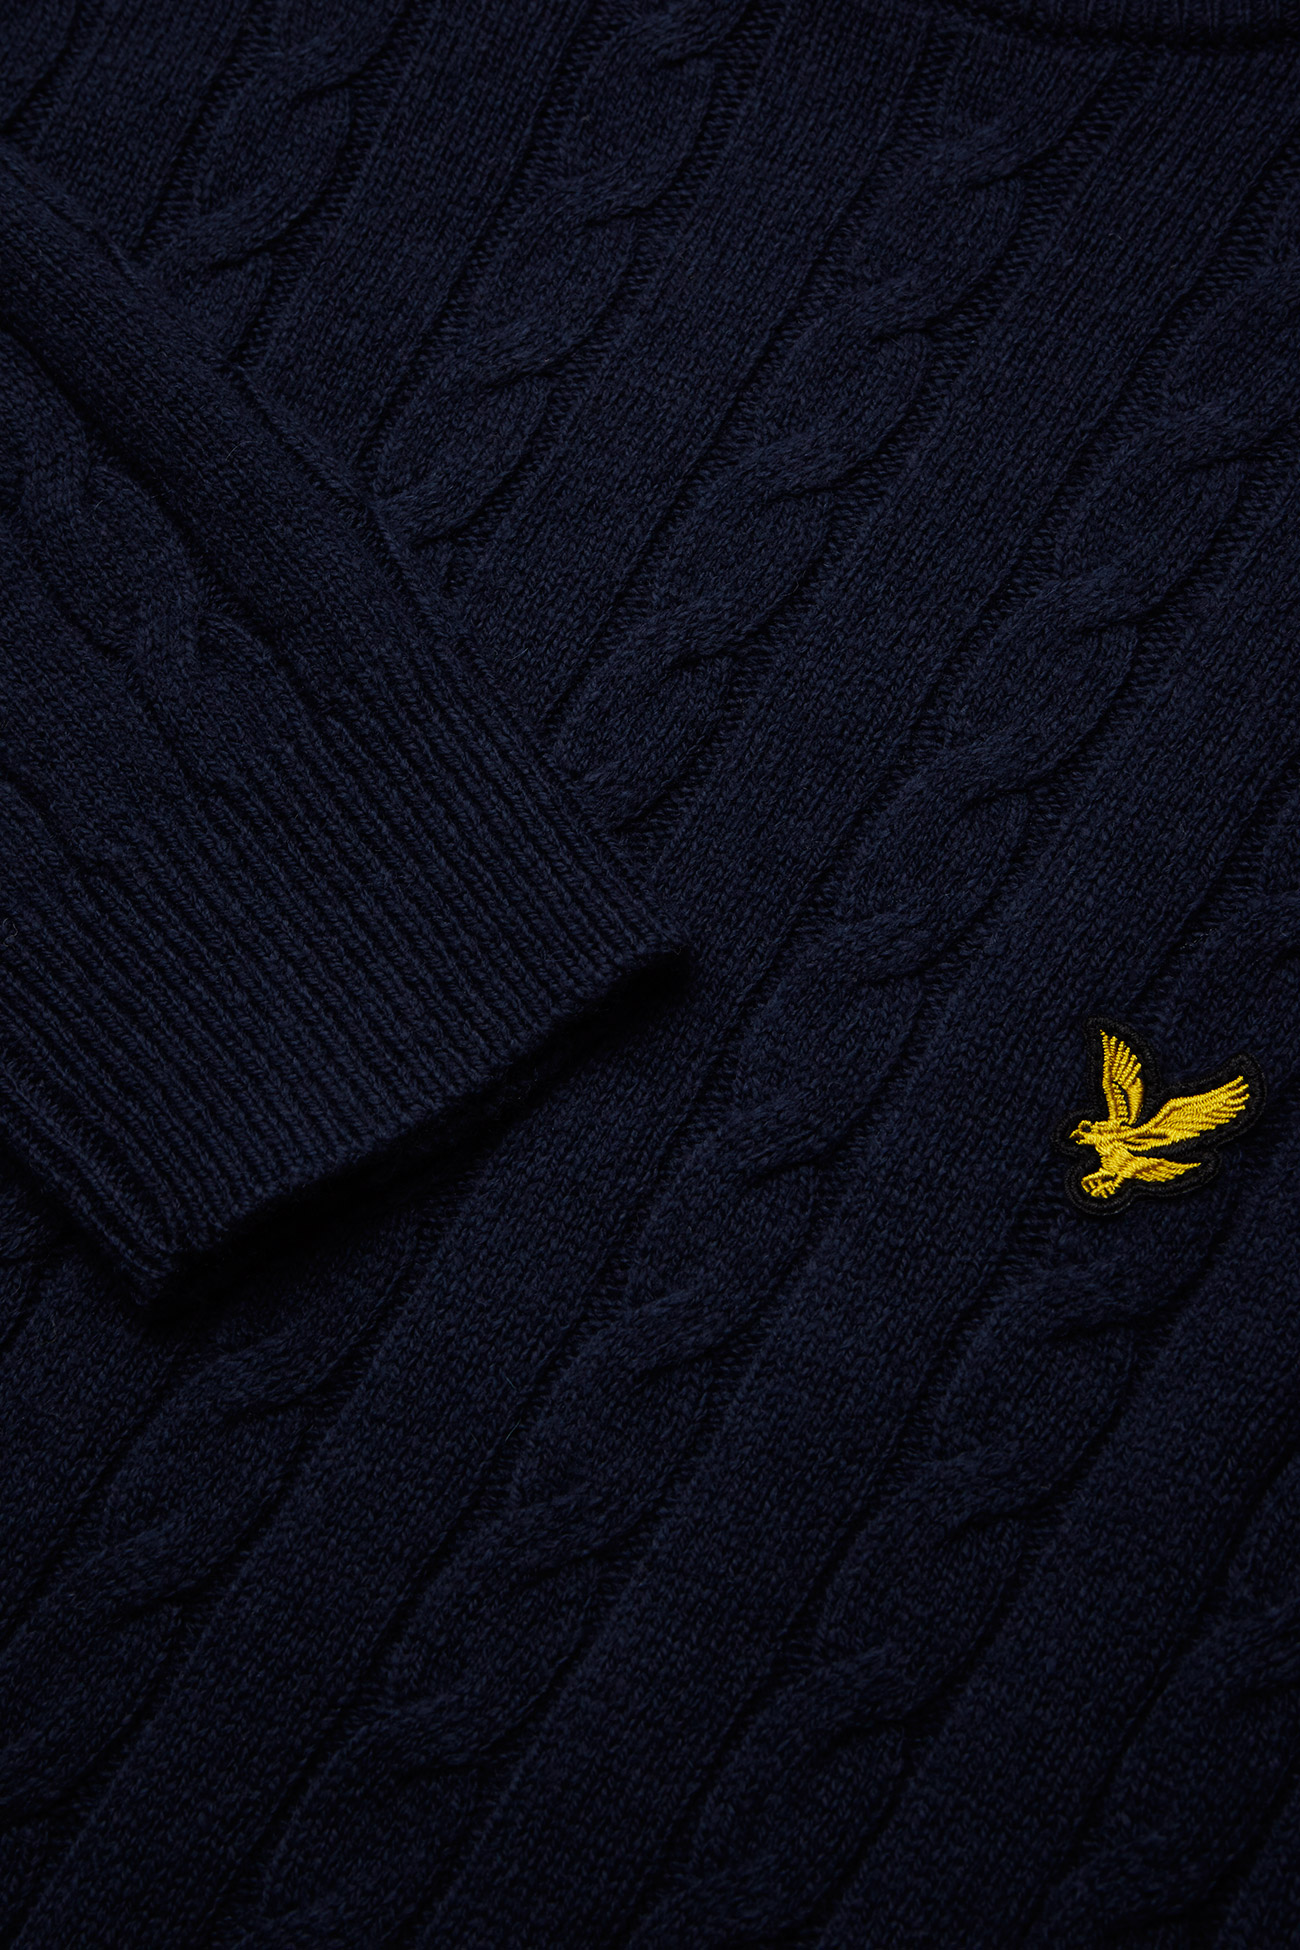 Lyle & Scott Cable Jumper - Strikkevarer DARK NAVY MARL - Menn Klær